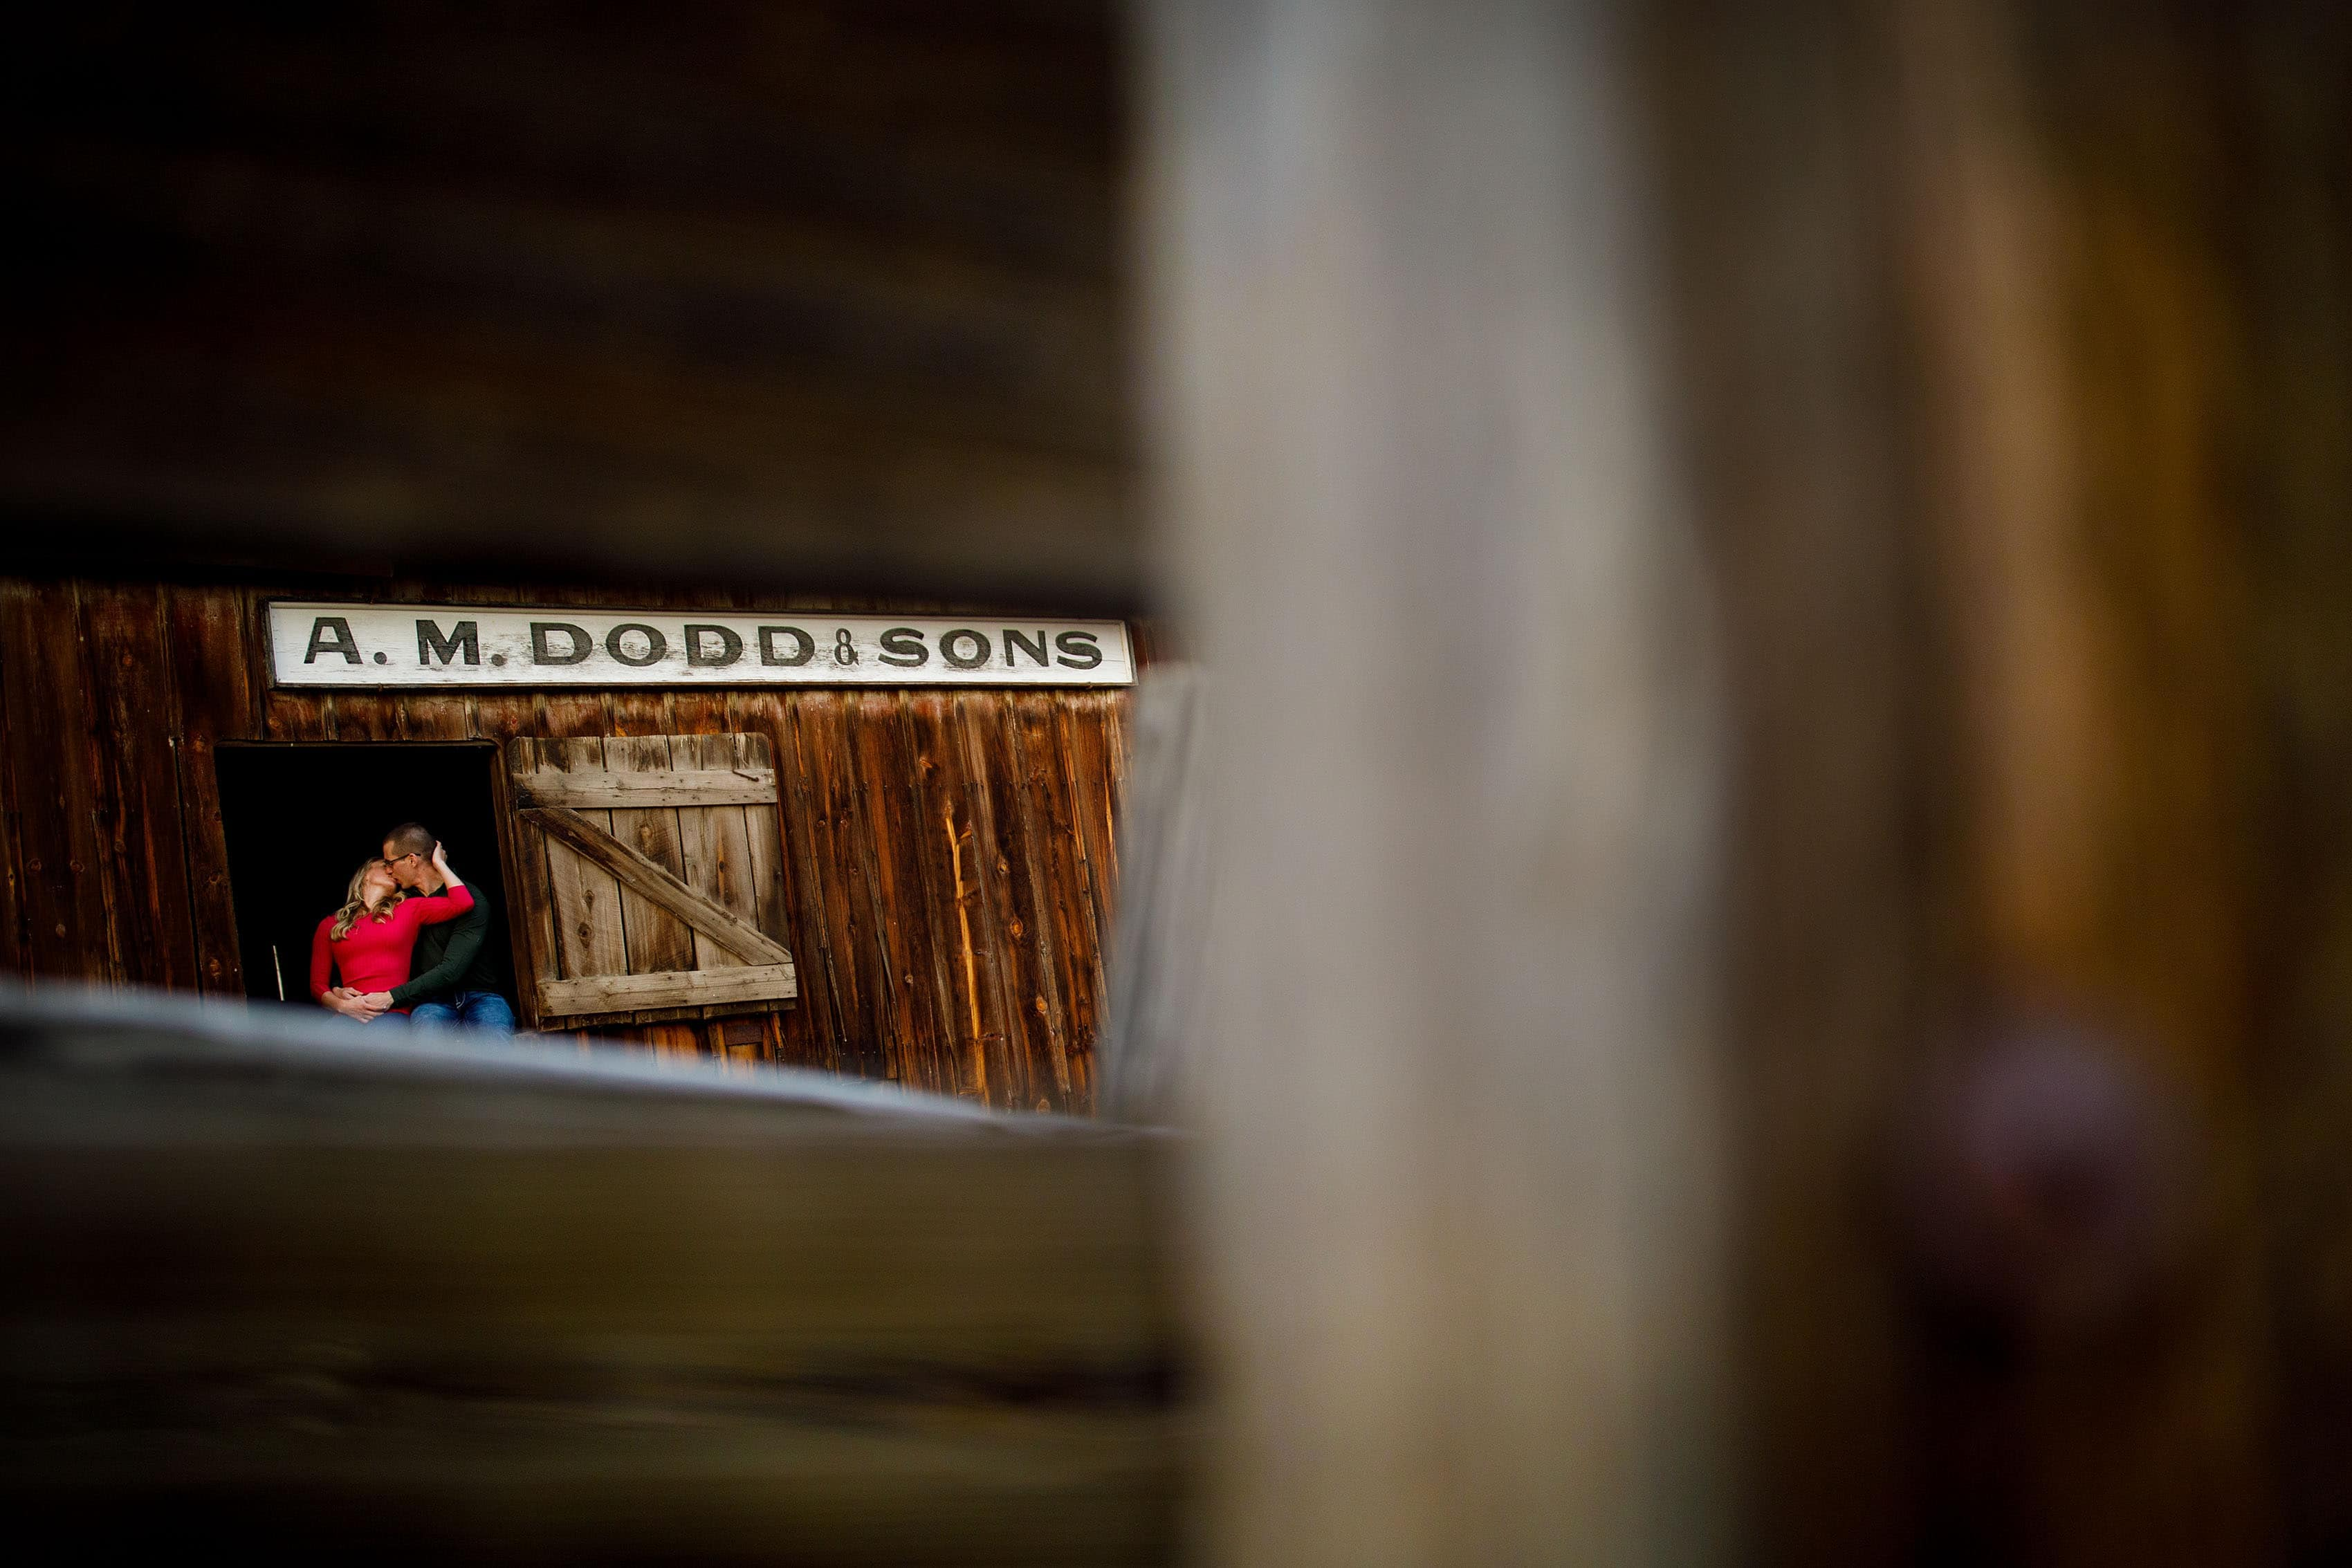 Kinsey and Sam share a kiss while sitting in the A.M. Dodd & Sons barn during their rustic barn engagement